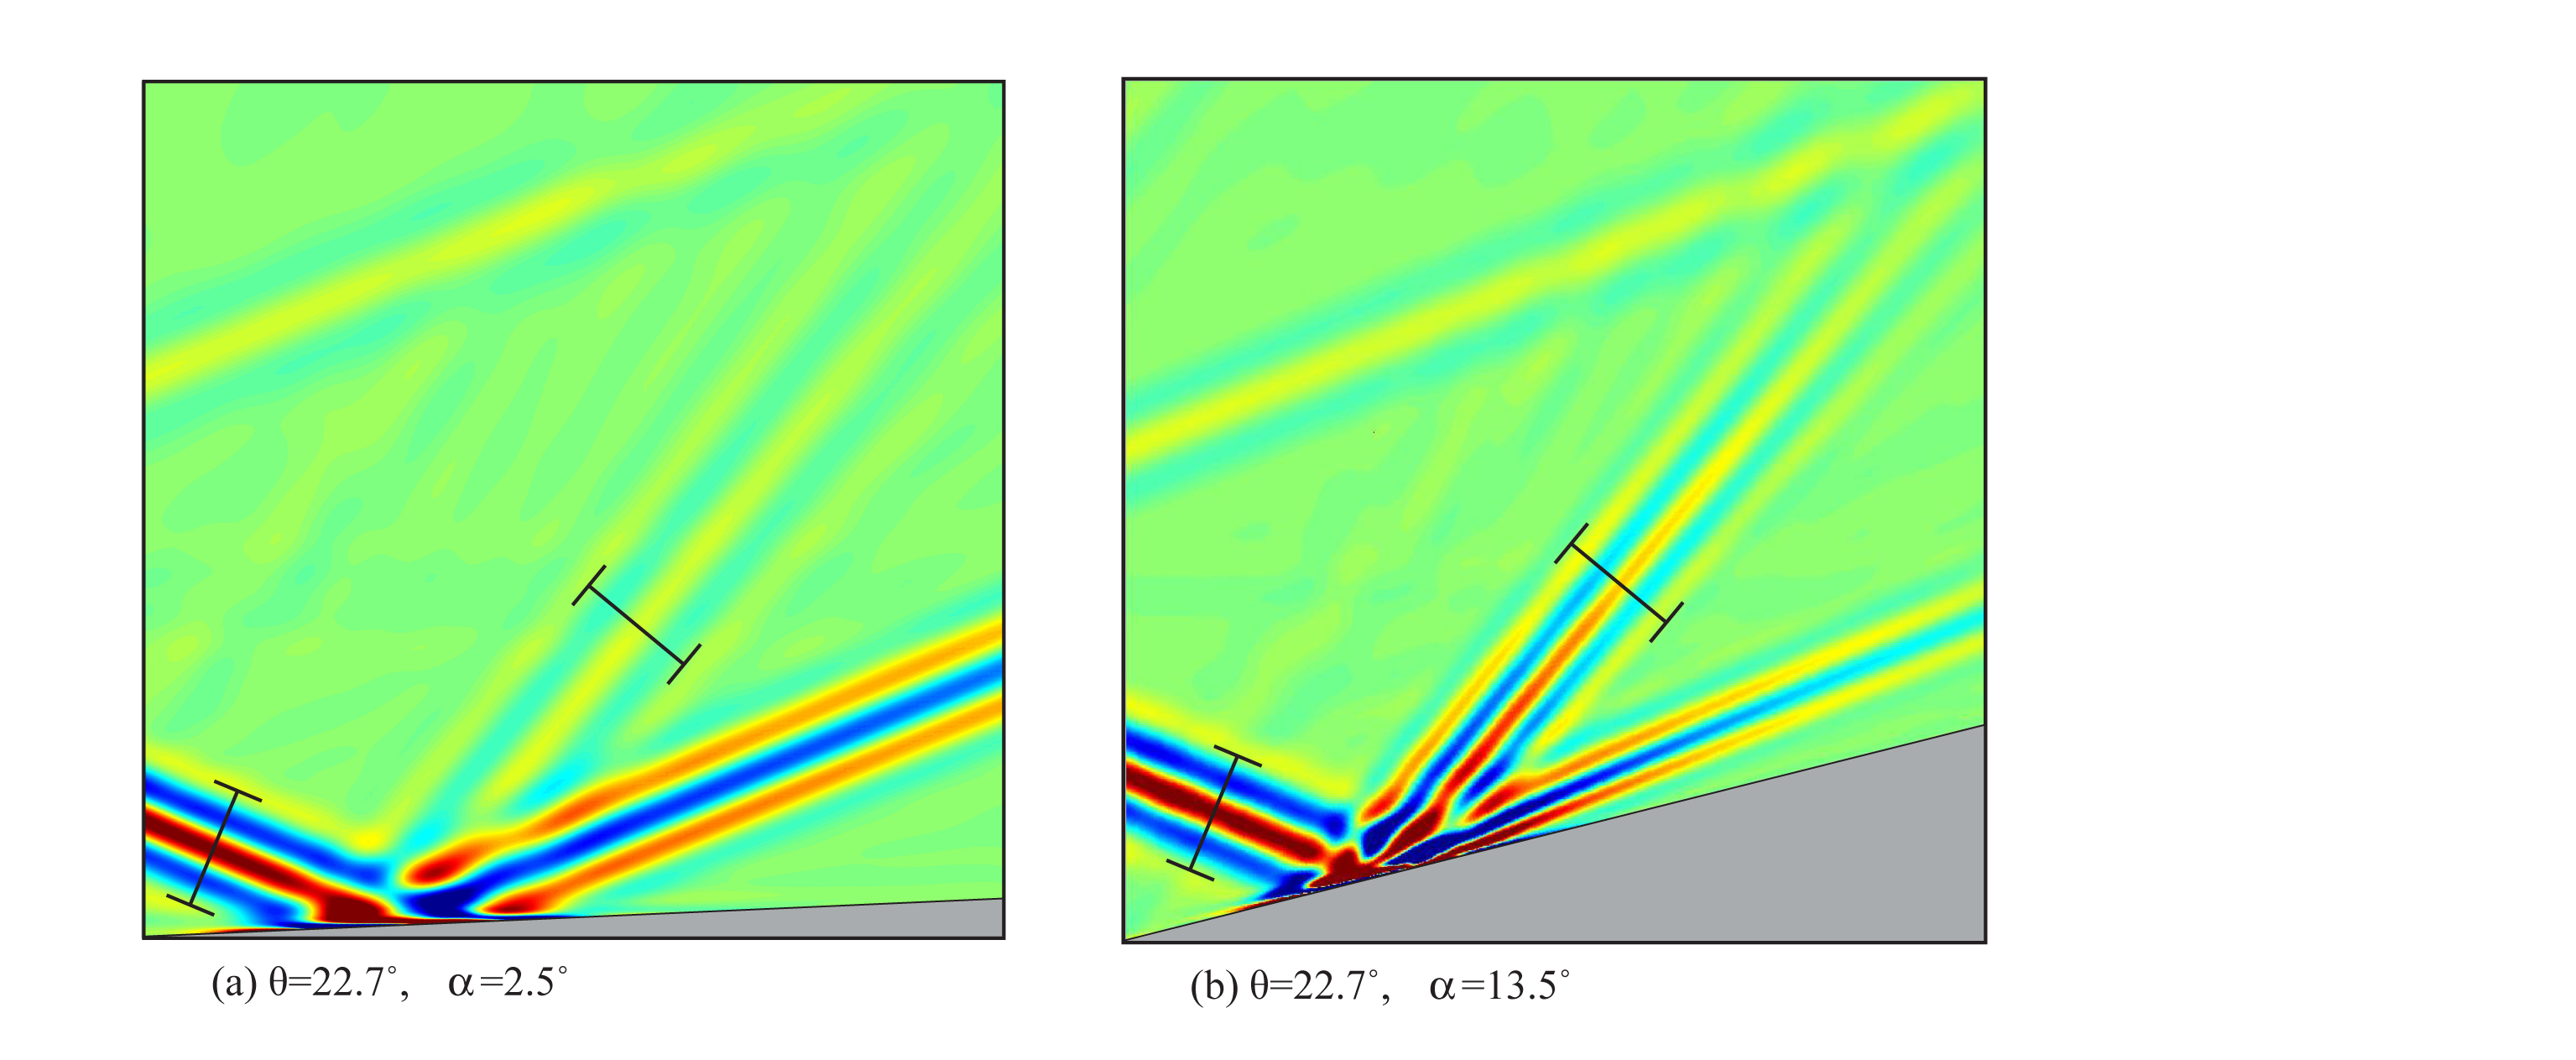 FIG. 2: Vorticity plots from two numerical simulations showing the incoming, reflected and second harmonic wave beams. The images have the same spatial and vorticity scales. and the distance between all pairs of arrows is the same. In panel (a), the boundary angle is ? = 2.5'?, which generates a relatively weak second harmonic. In panel (b), ? = 13.9'? which is where ray theory predicts that the width of the second harmonic is the same as the incoming wave beam, and where the strongest second harmonic wave beam is generated.